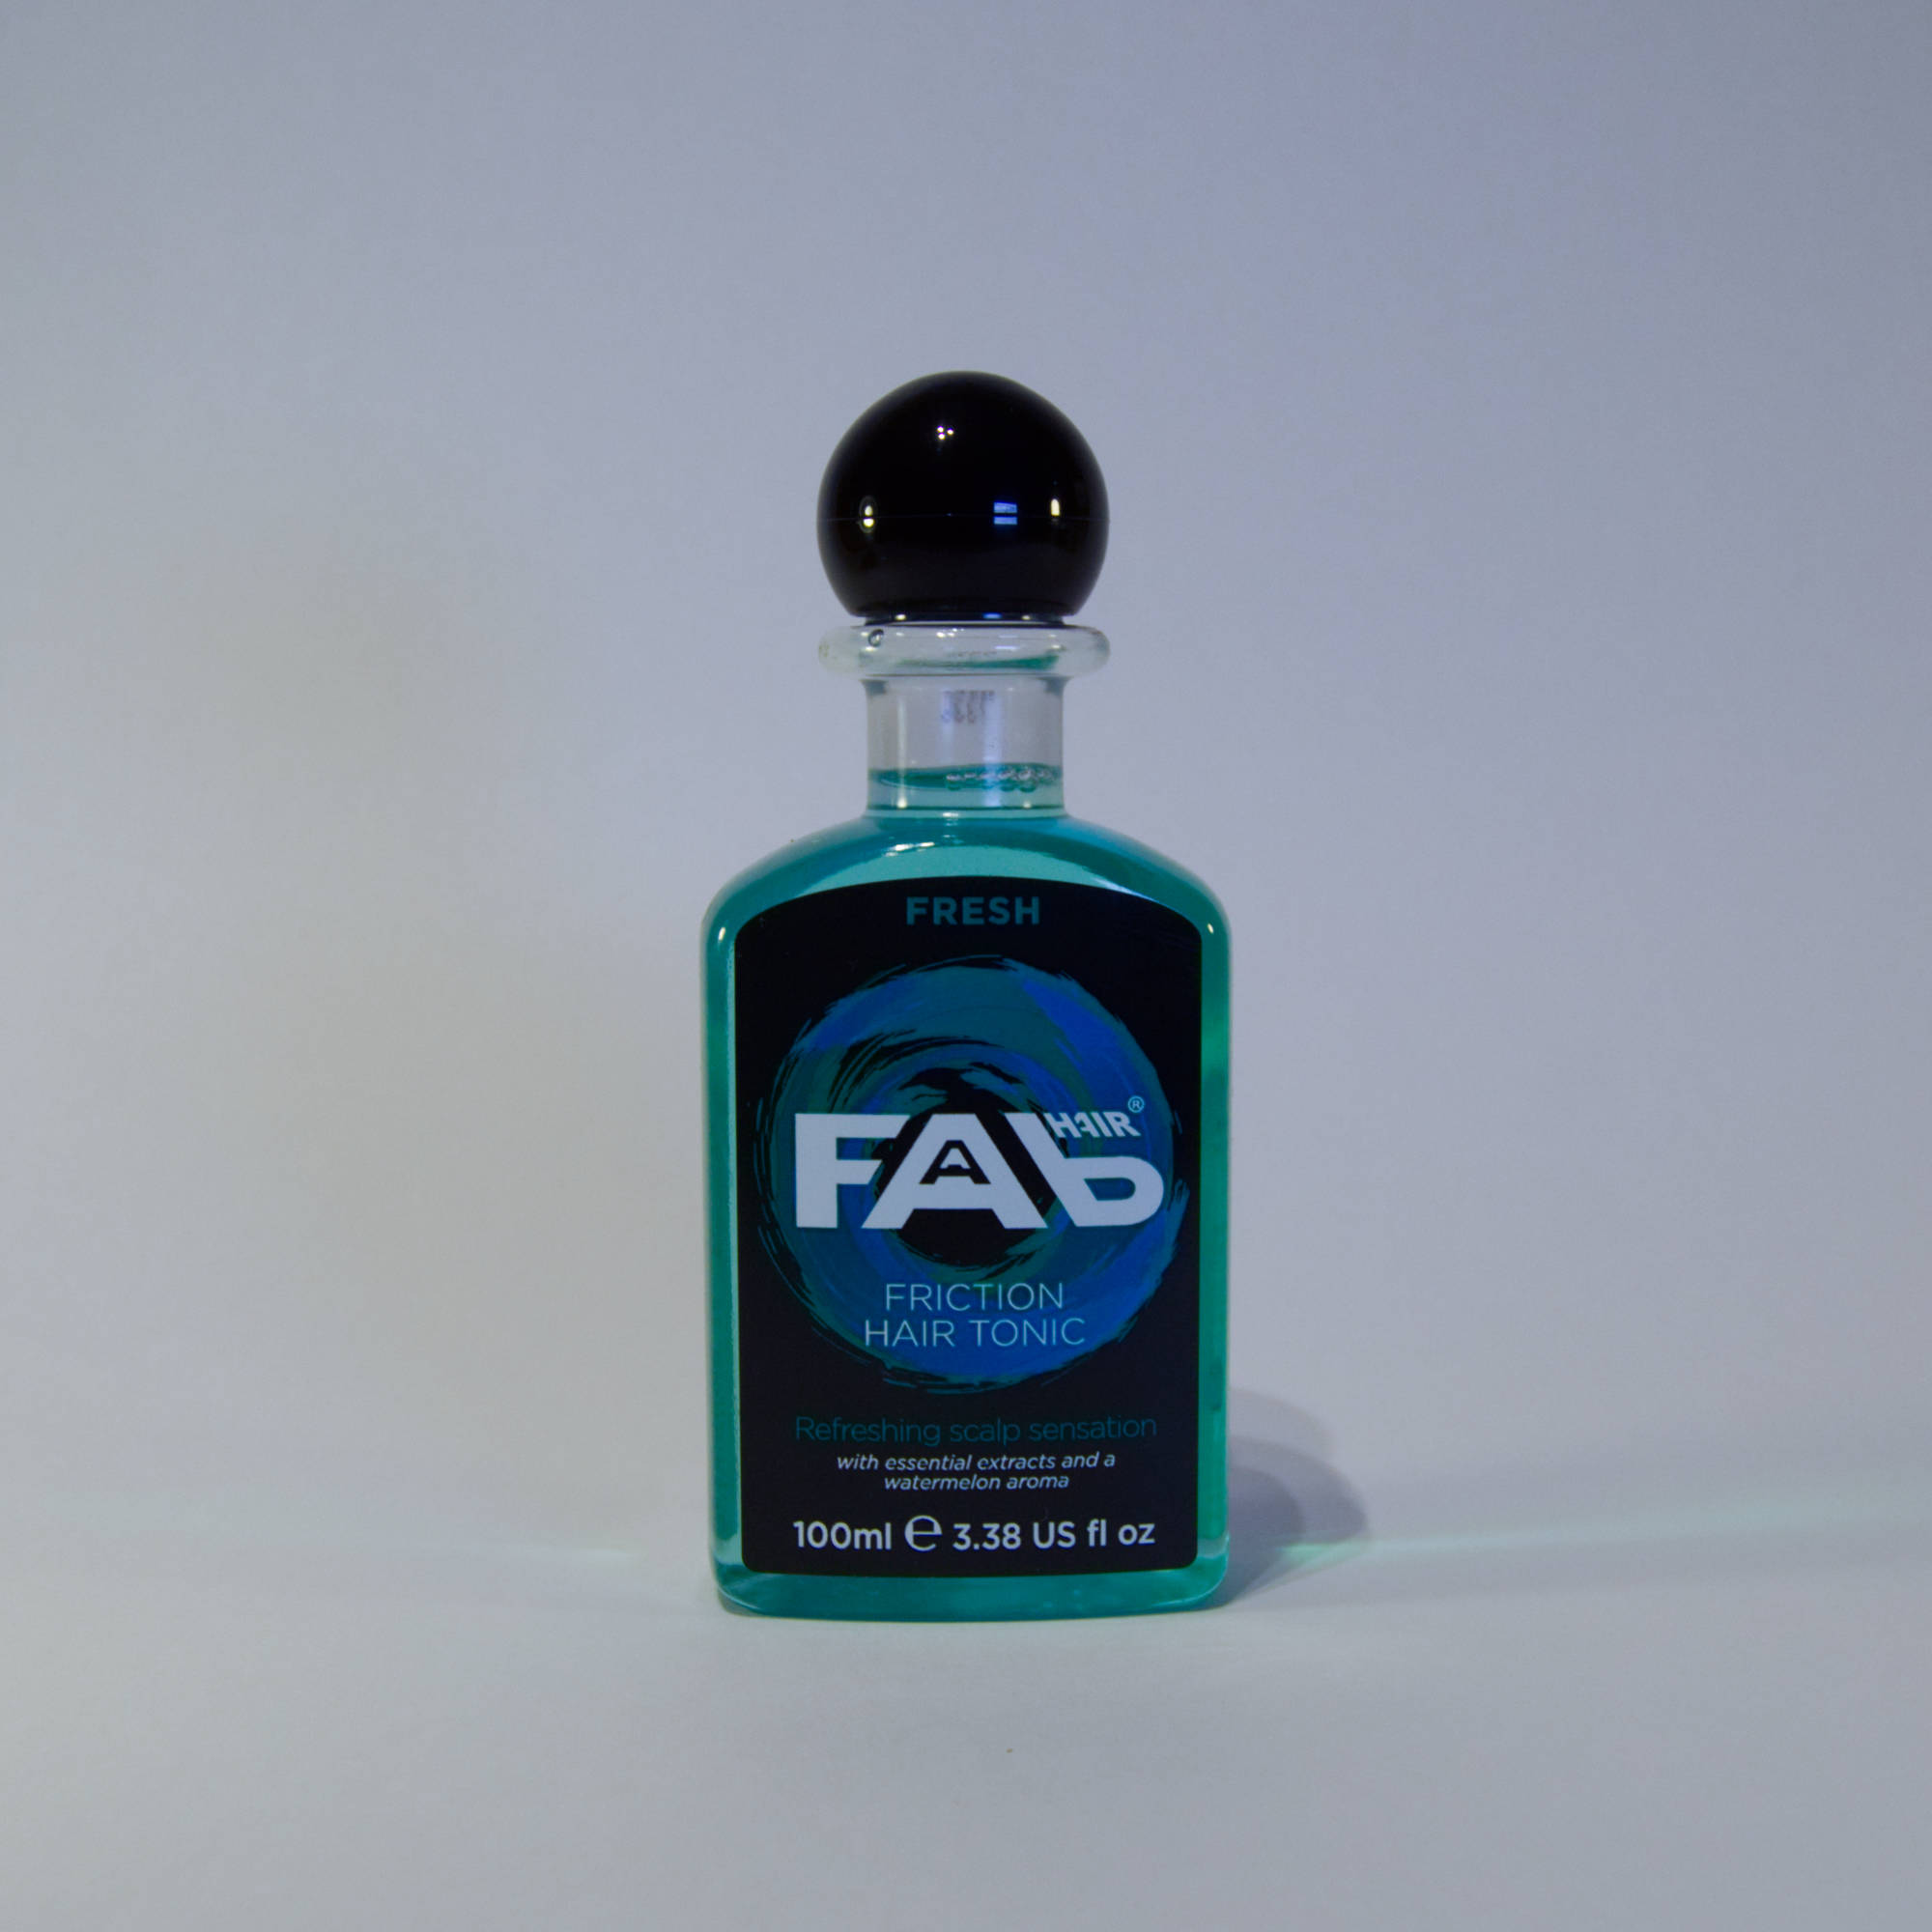 100ml bottle of Fresh flavoured FAB friction hair tonic